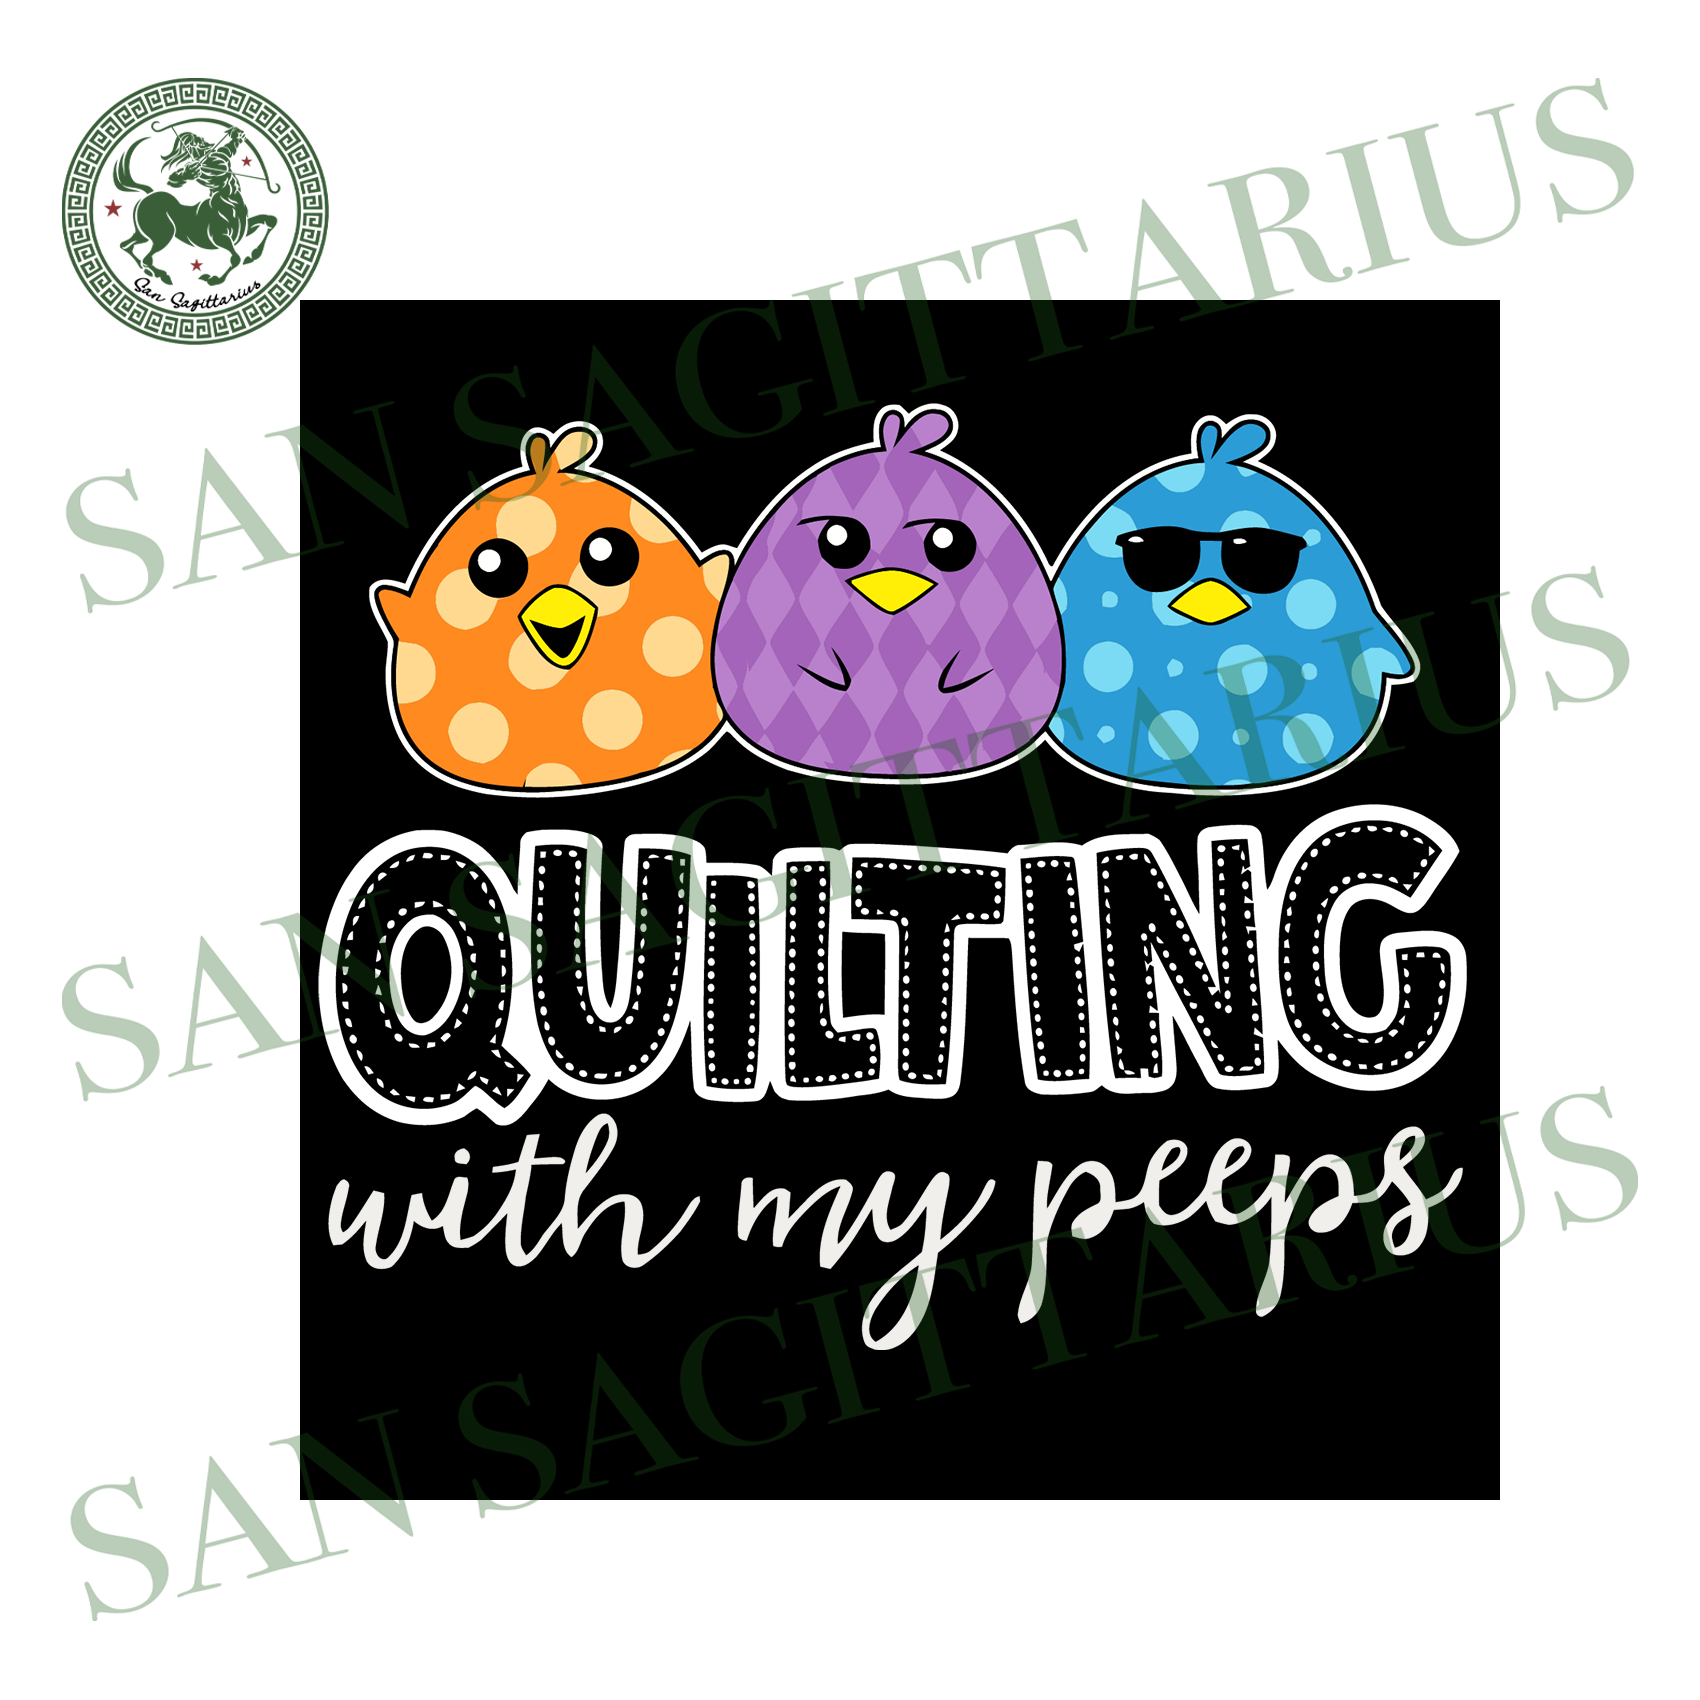 Quilting With My Peeps Svg,Funny Quilting Svg,Quilting Svg,Quilting With My Peeps Gift,Quilting With My Peeps Shirt,Cute Peeps Svg,Lover Peeps Svg